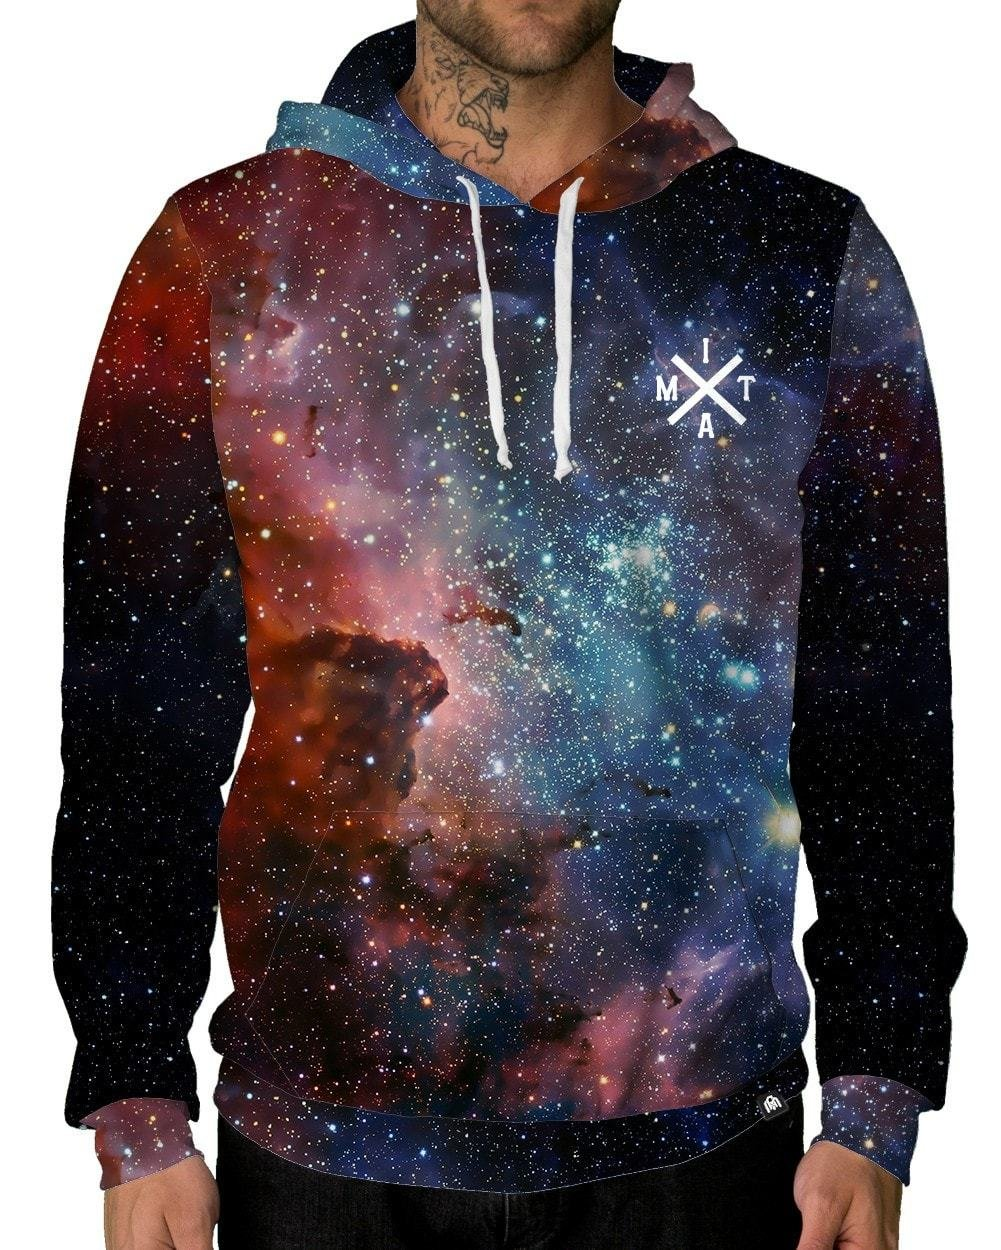 INTO THE AM Milky Way Pullover Hoodie (2X-Large)